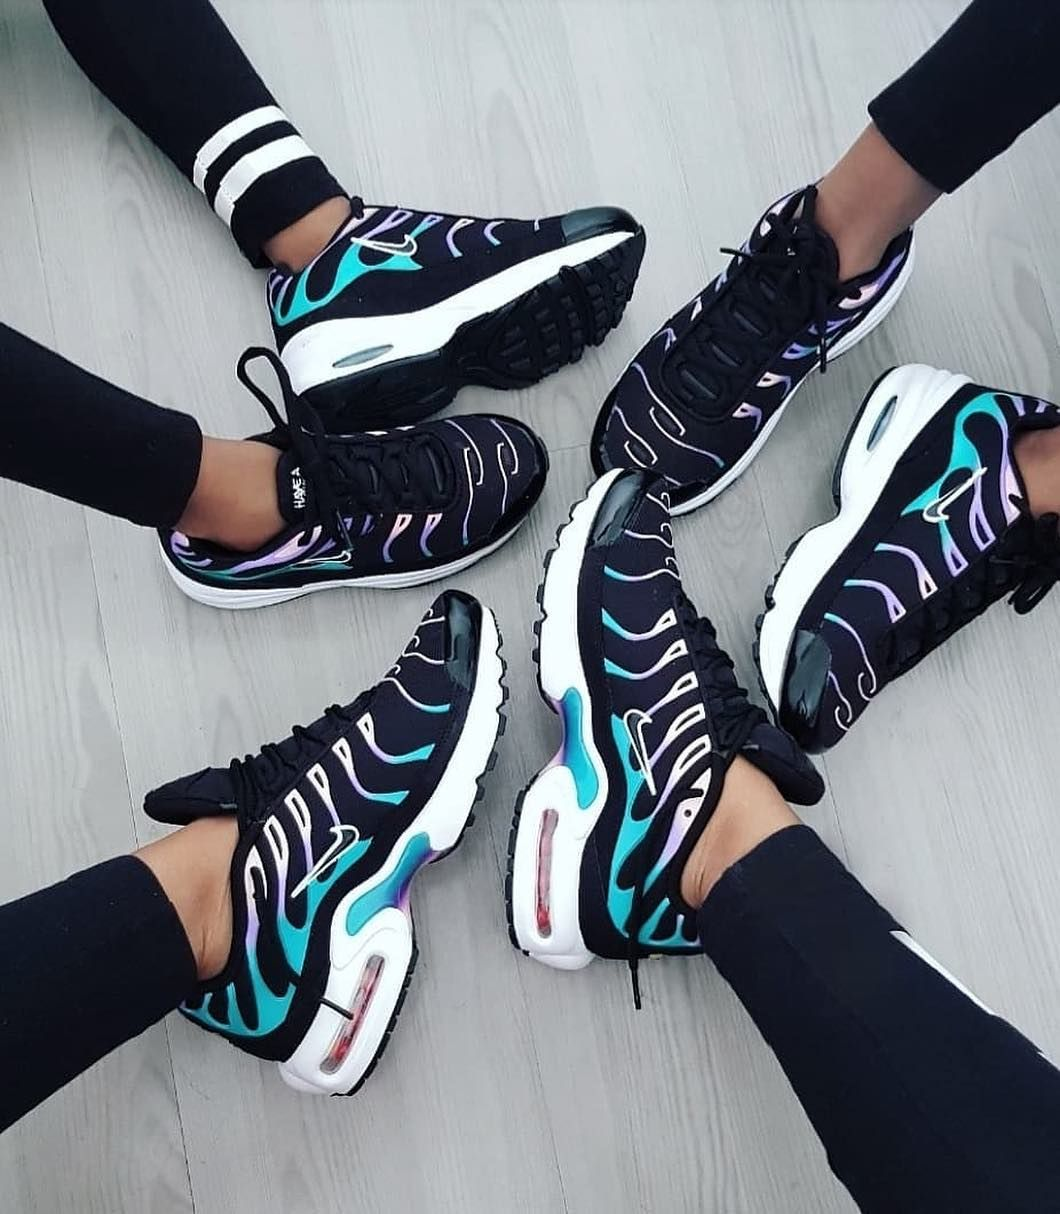 Nike air max plus, Nike shoes outfits